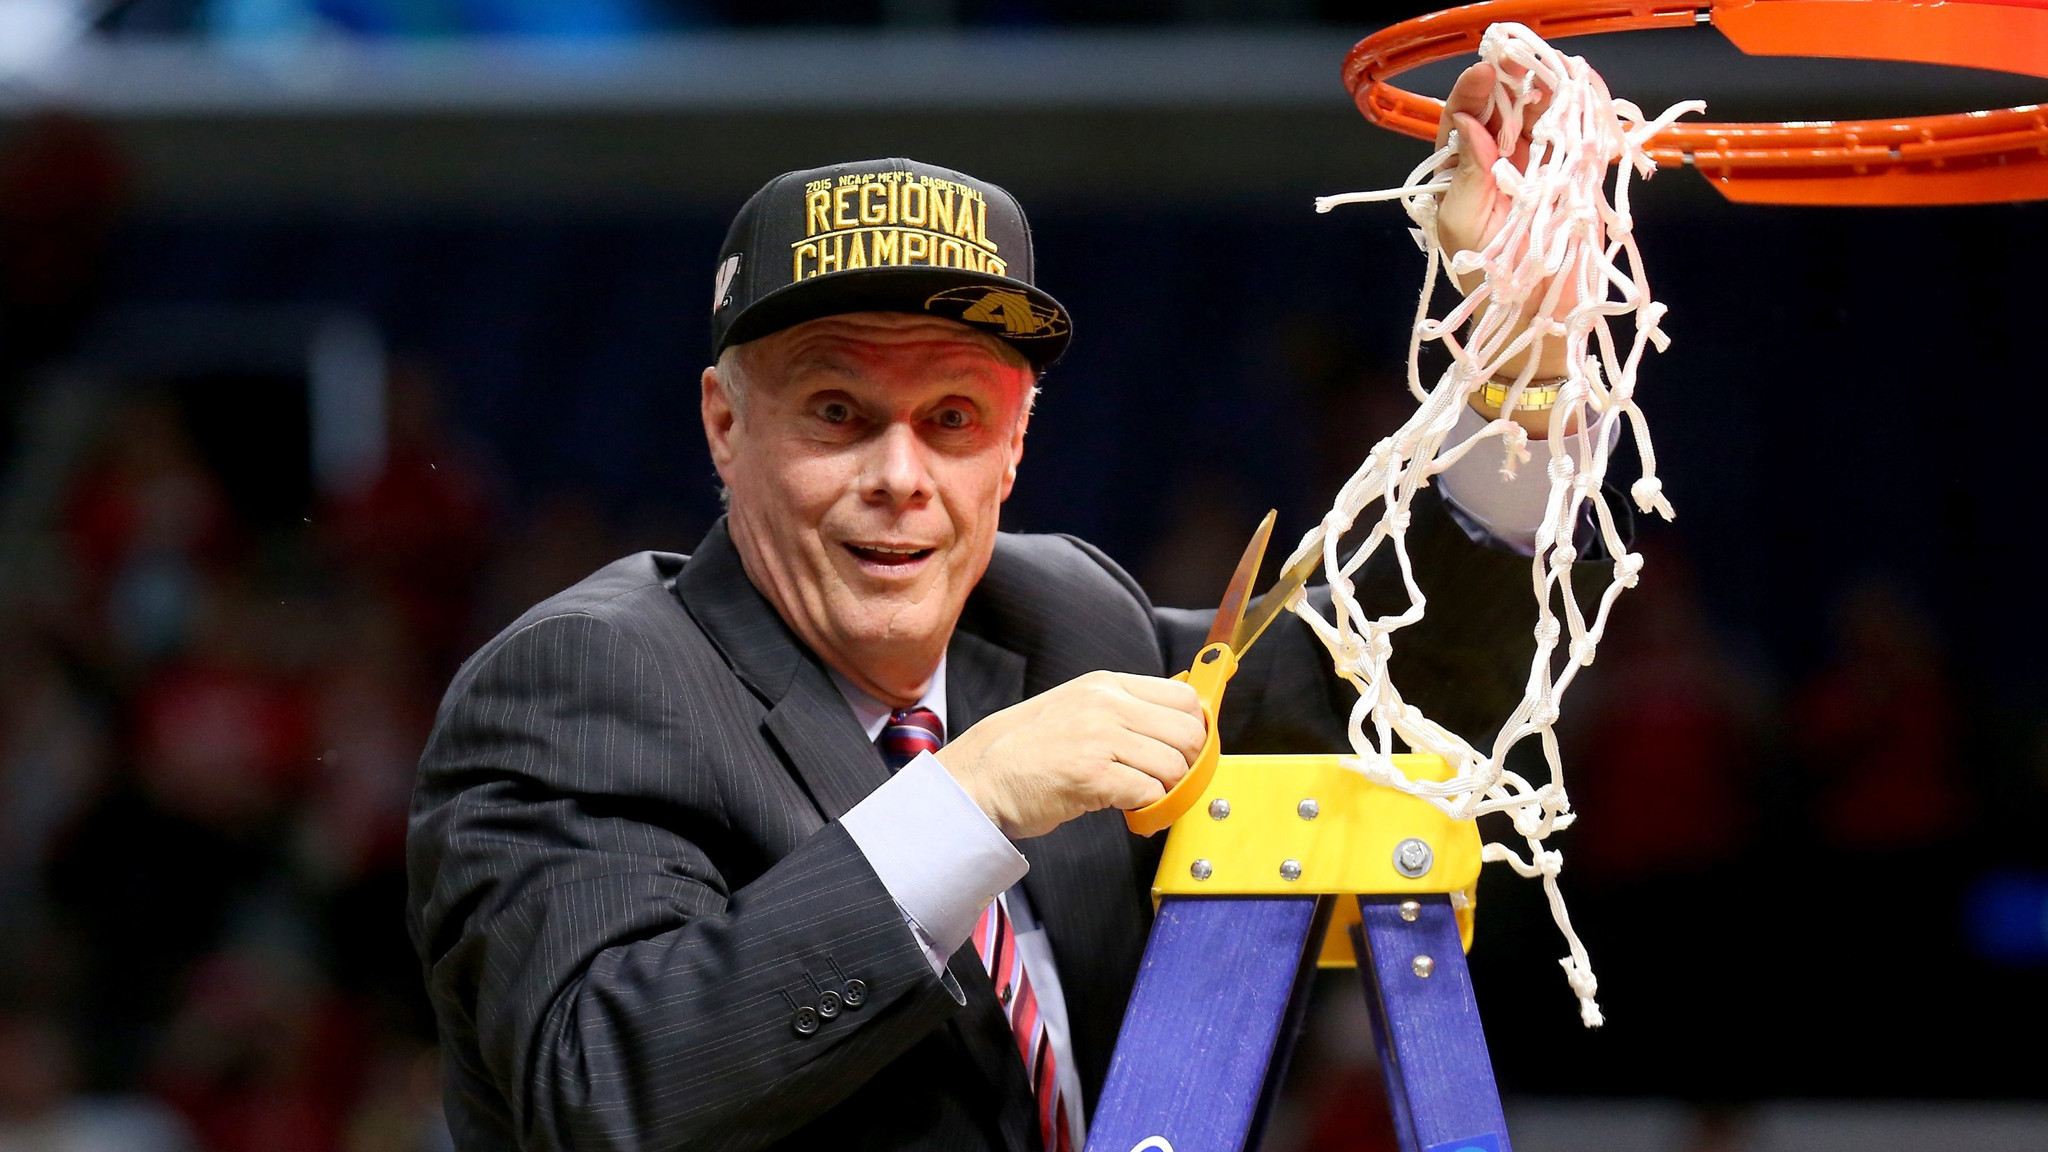 Wisconsin Final Four team has a family tree with deep coaching roots